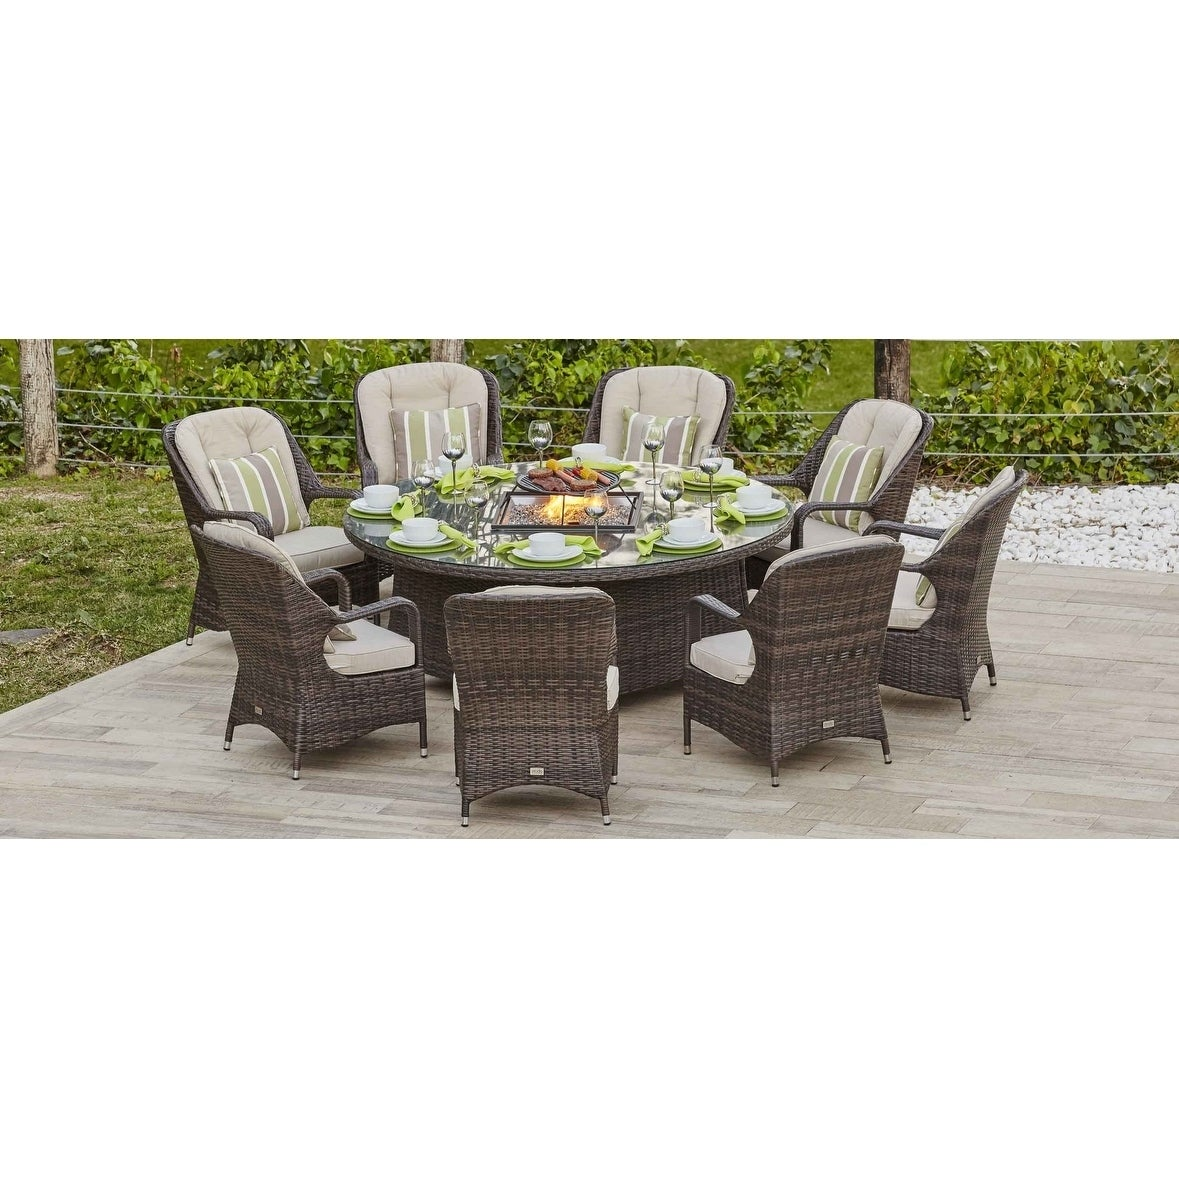 Ellington Outdoor Propane 8 Seat Round Gas Fire Pit Table Table Only Overstock 24268843